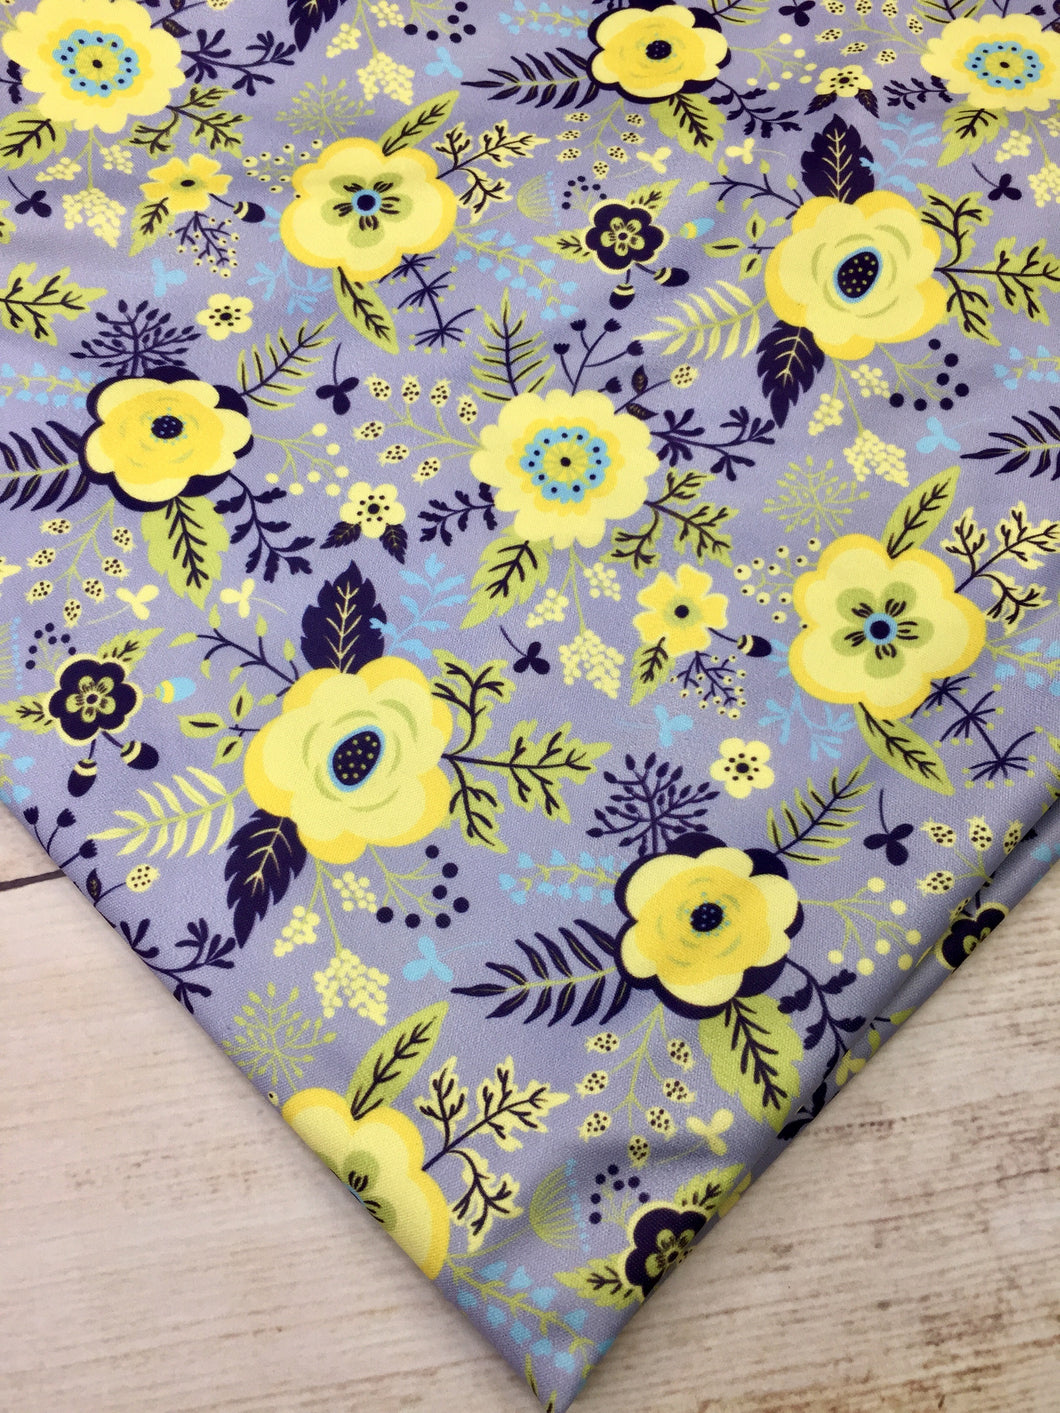 Yellow and Grey Floral Polyester Interlock